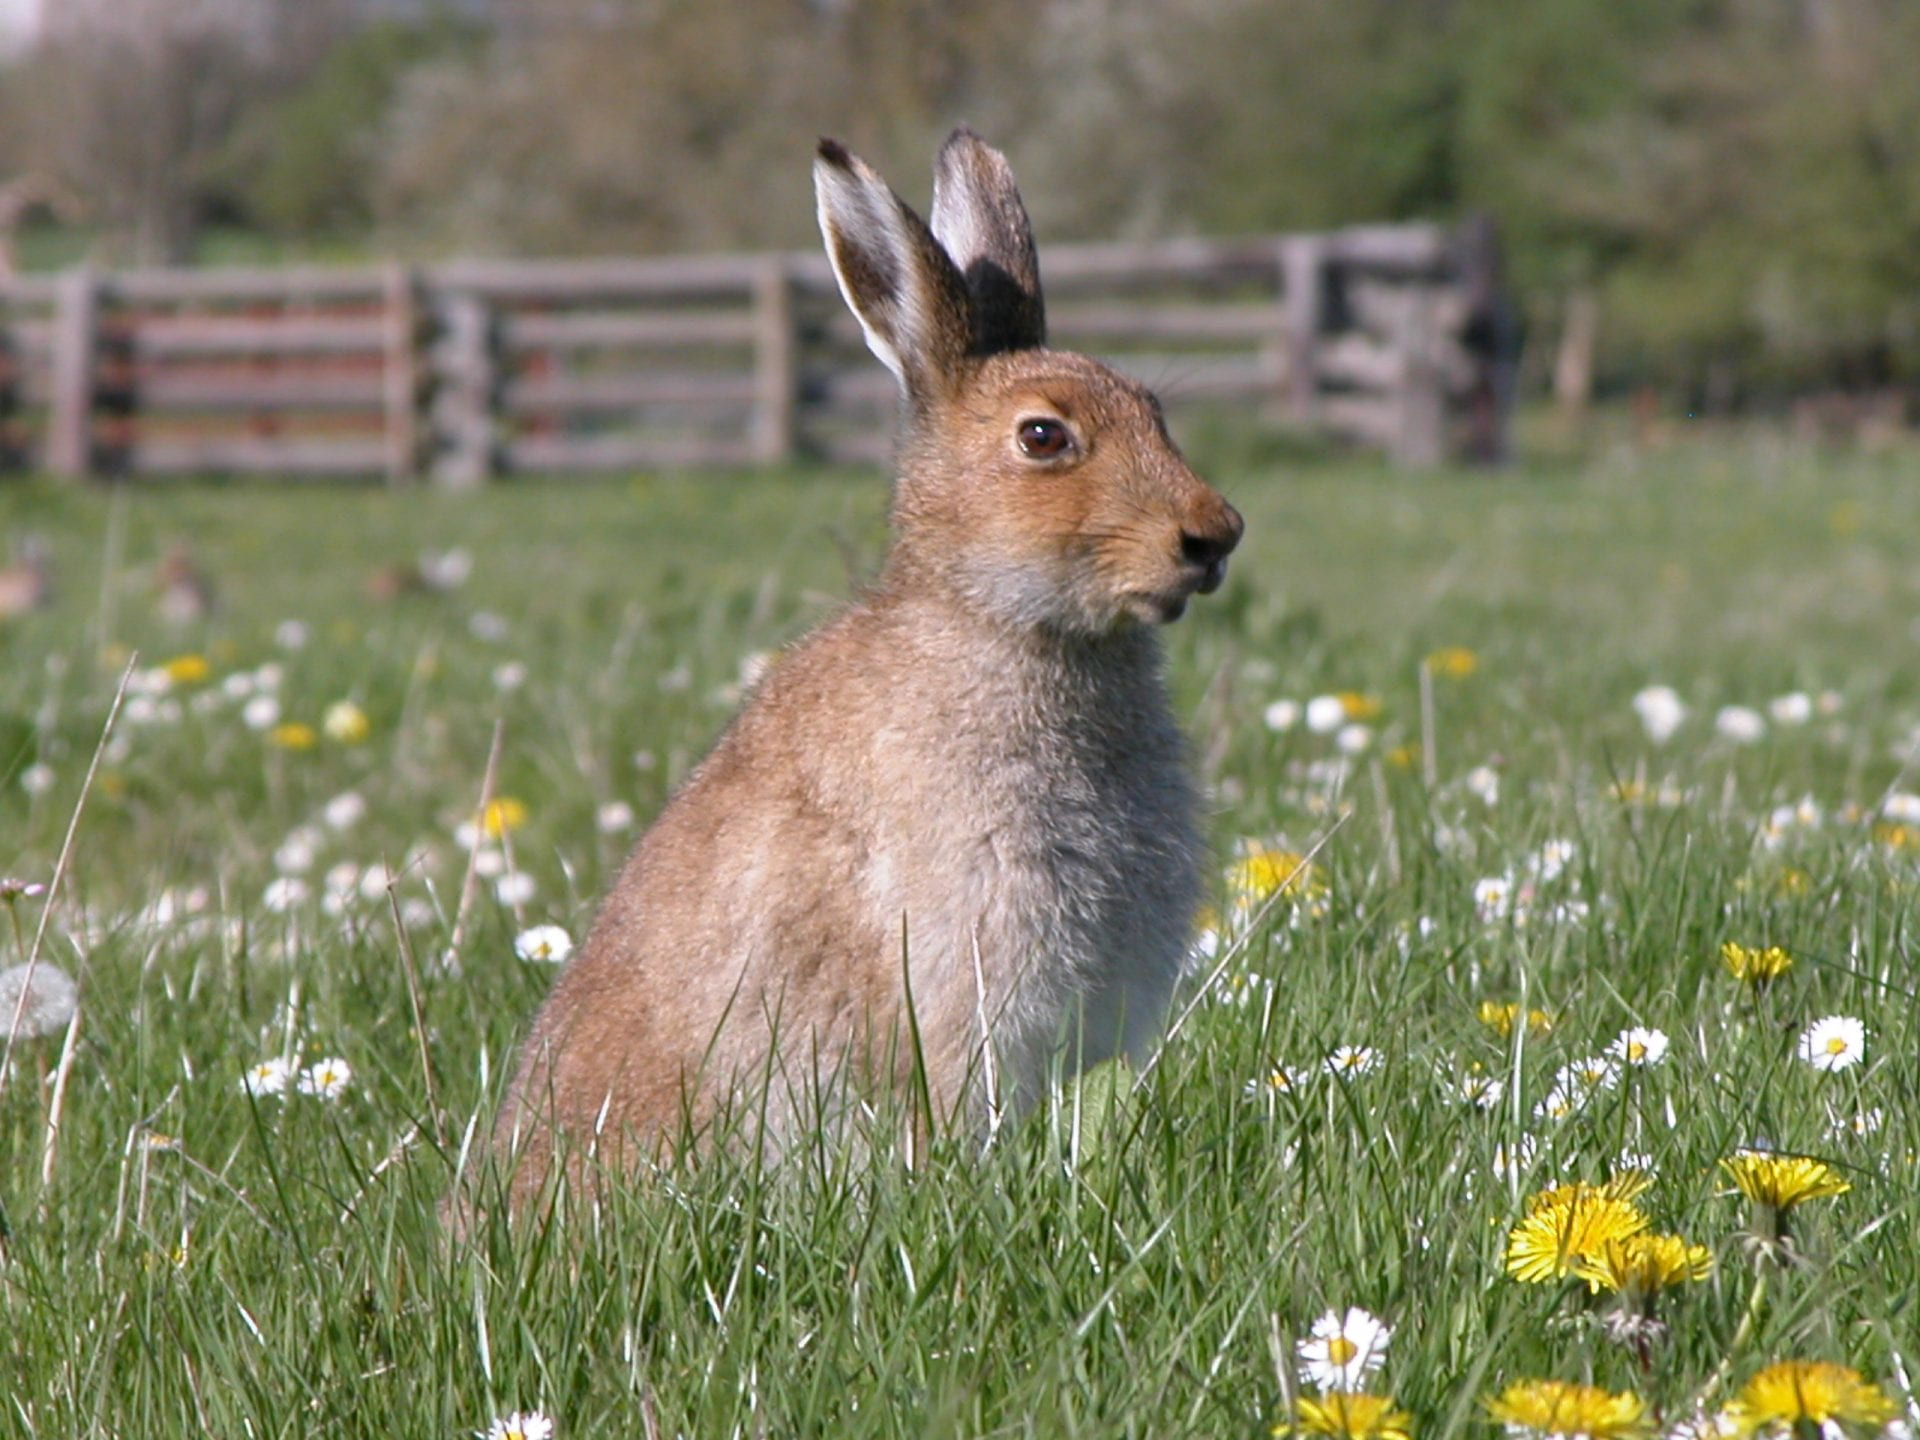 Irish-Hare-sitting-in-field-surrounded-by-daisies